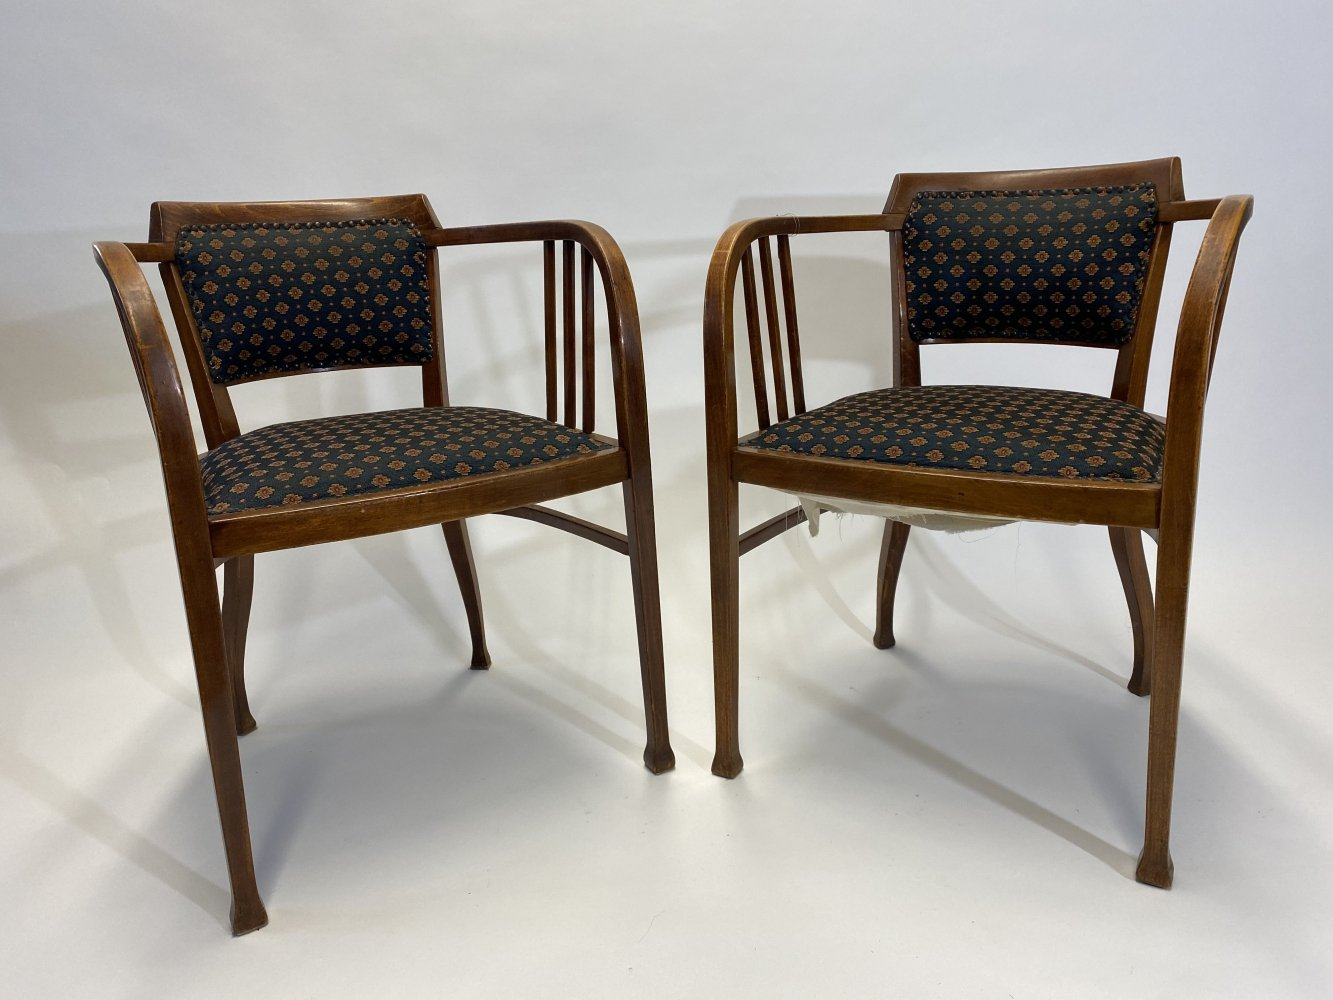 Iconic secession armchairs no.6513 by Gustav Siegel for Thonet, 1920s